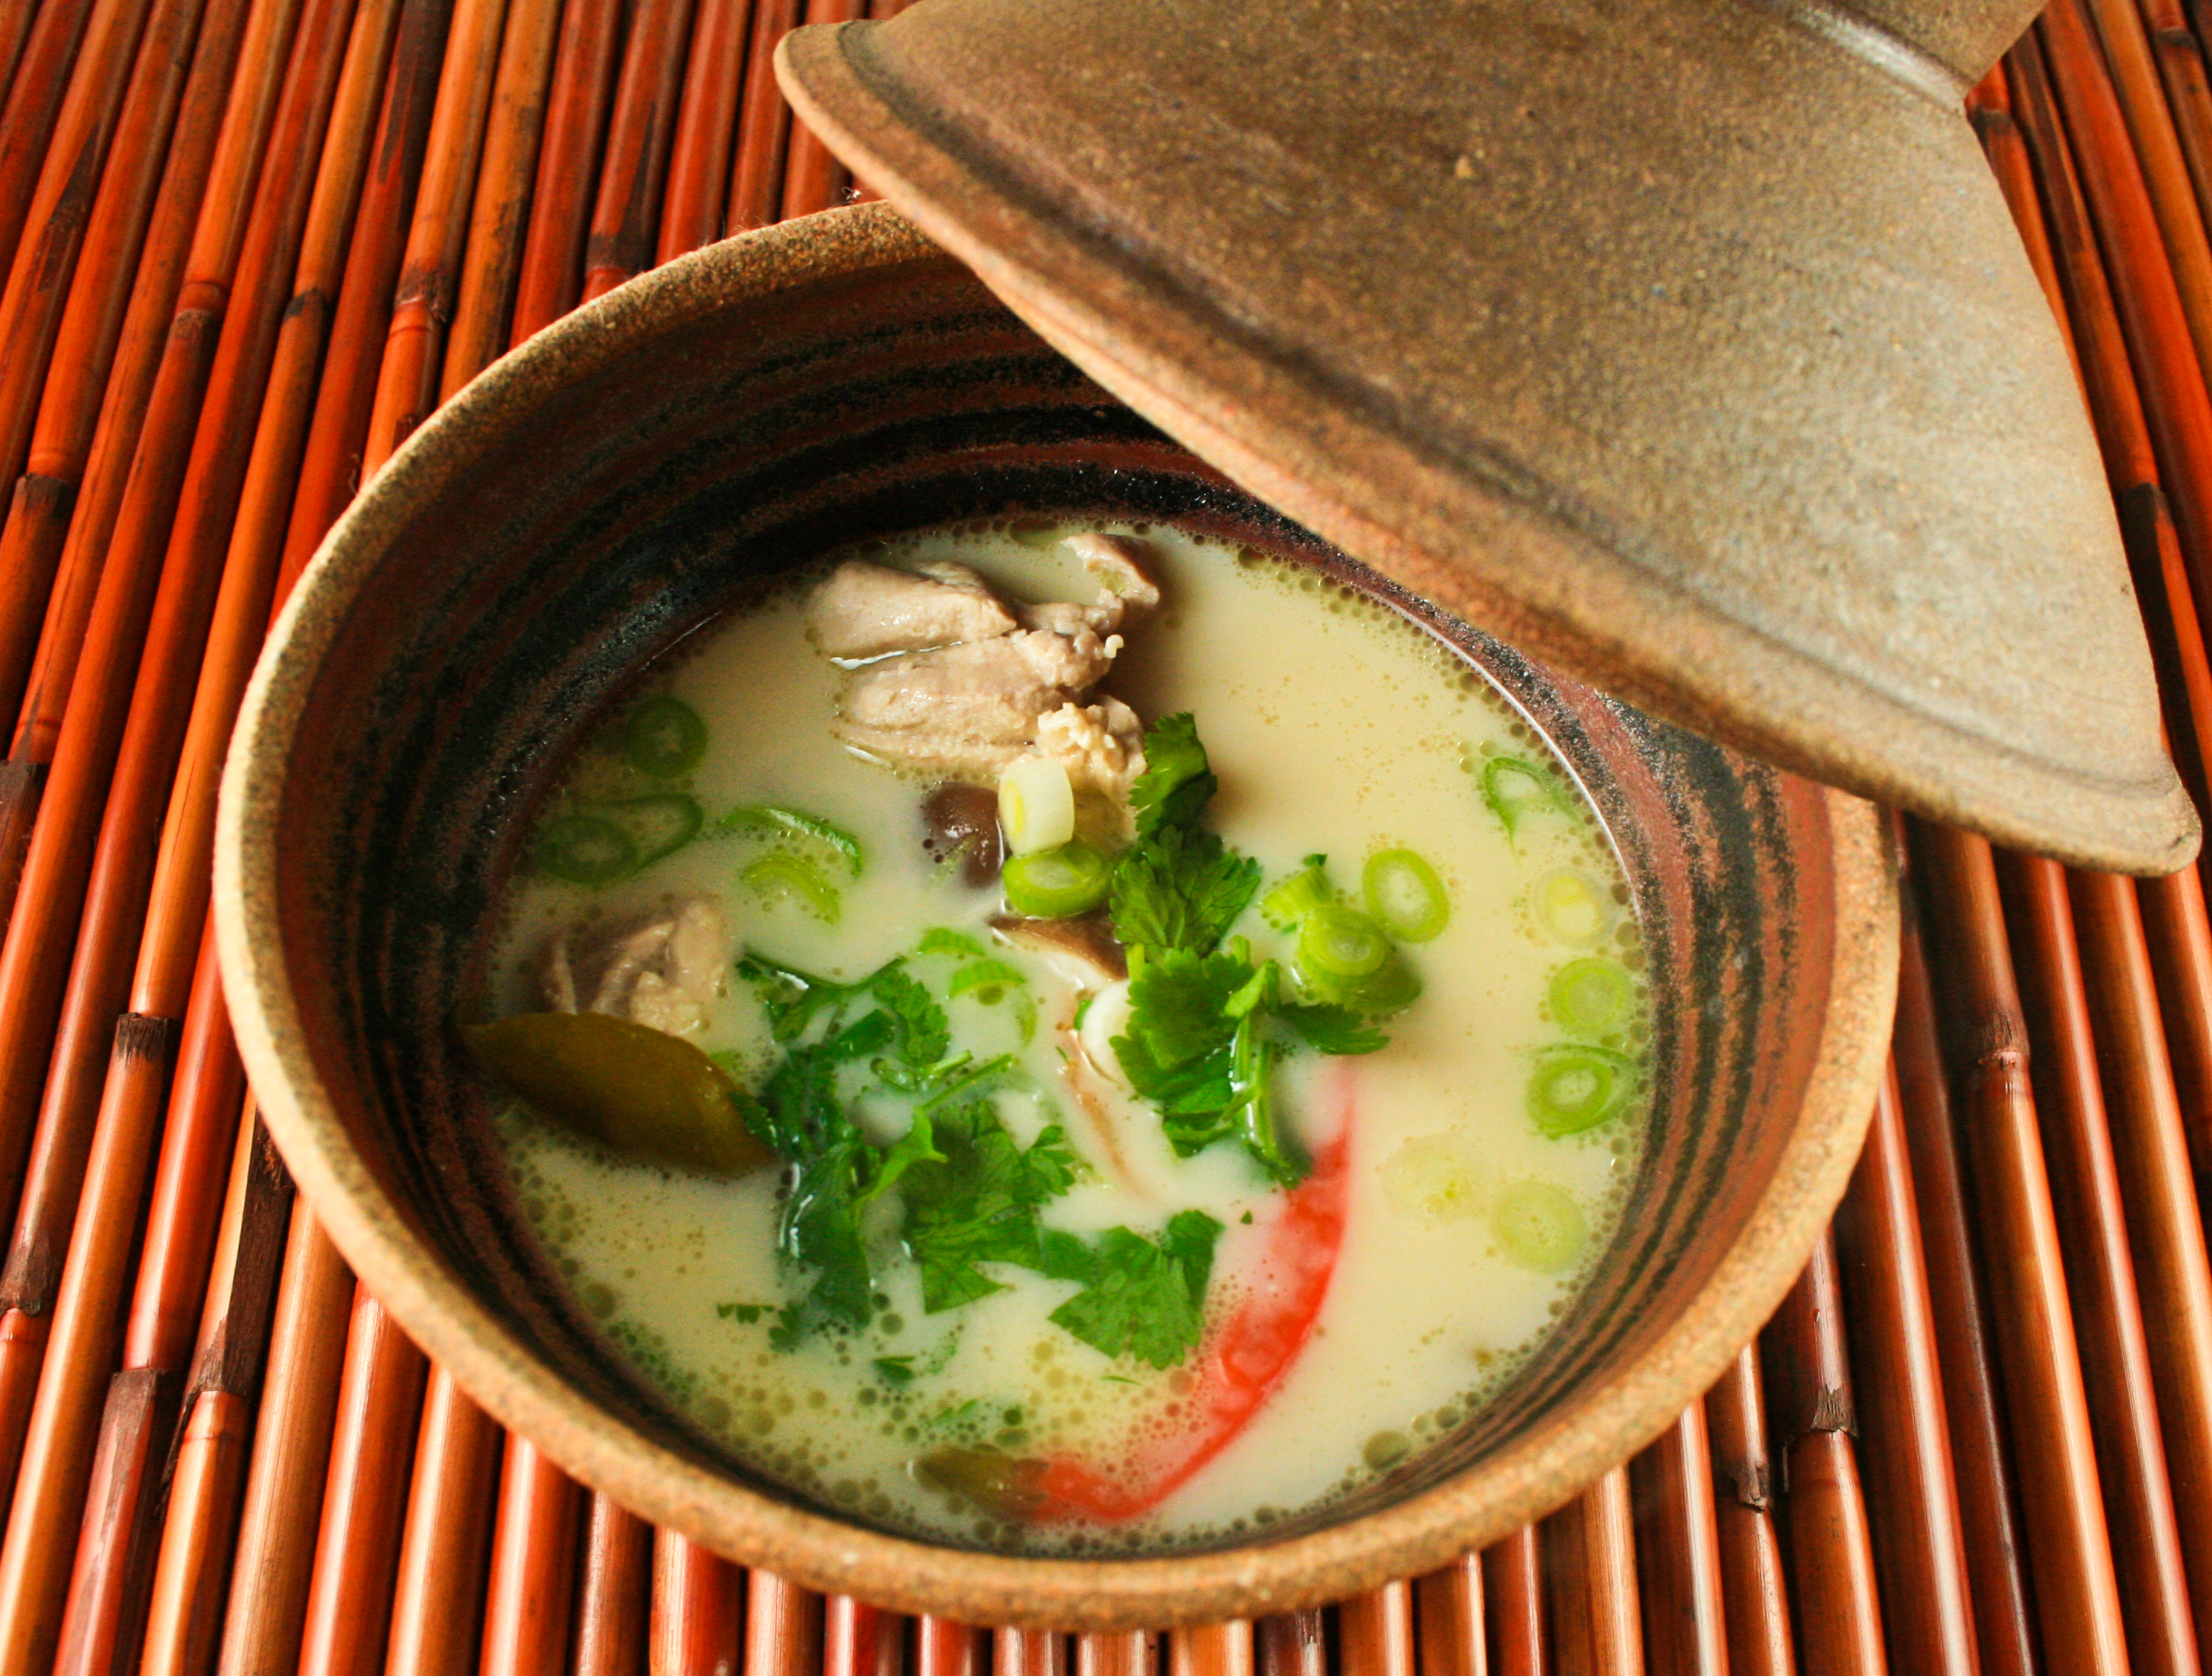 Tom Kha Gai — Hot and Sour Chicken Soup with Galangal and Lemon Grass